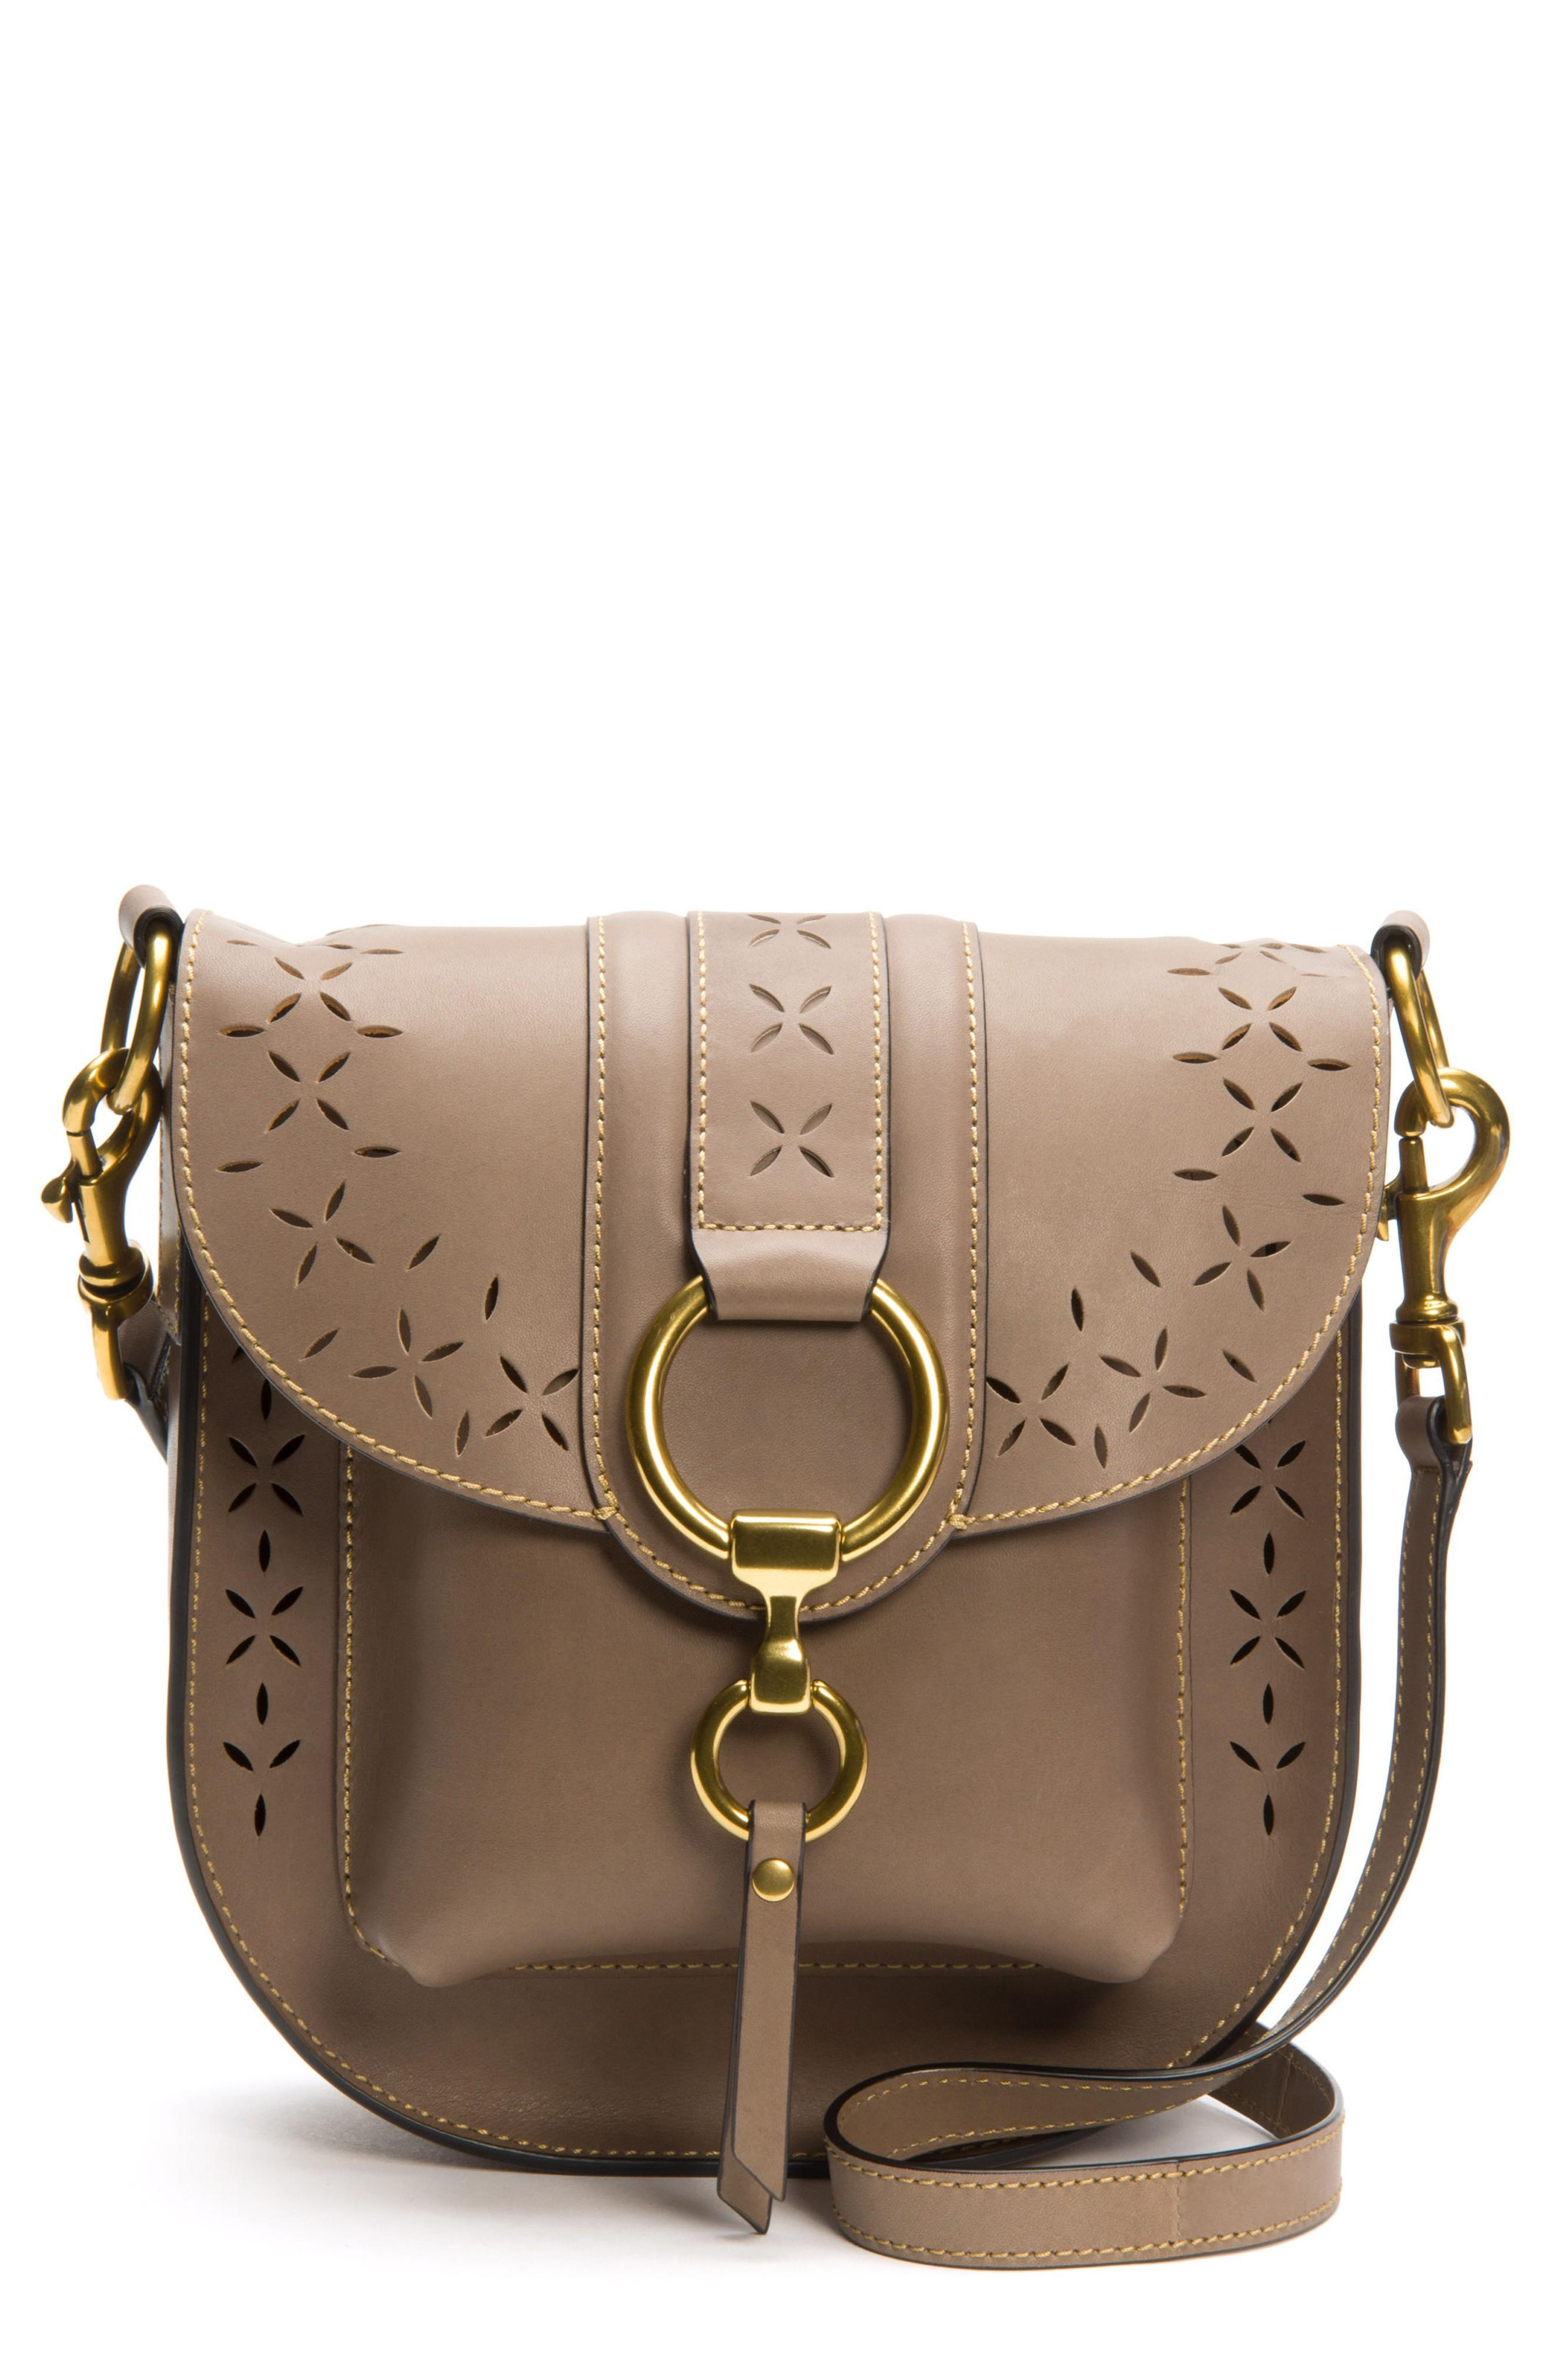 Frye Ilana Harness Perforated Leather Saddle Bag - Grey In Cement